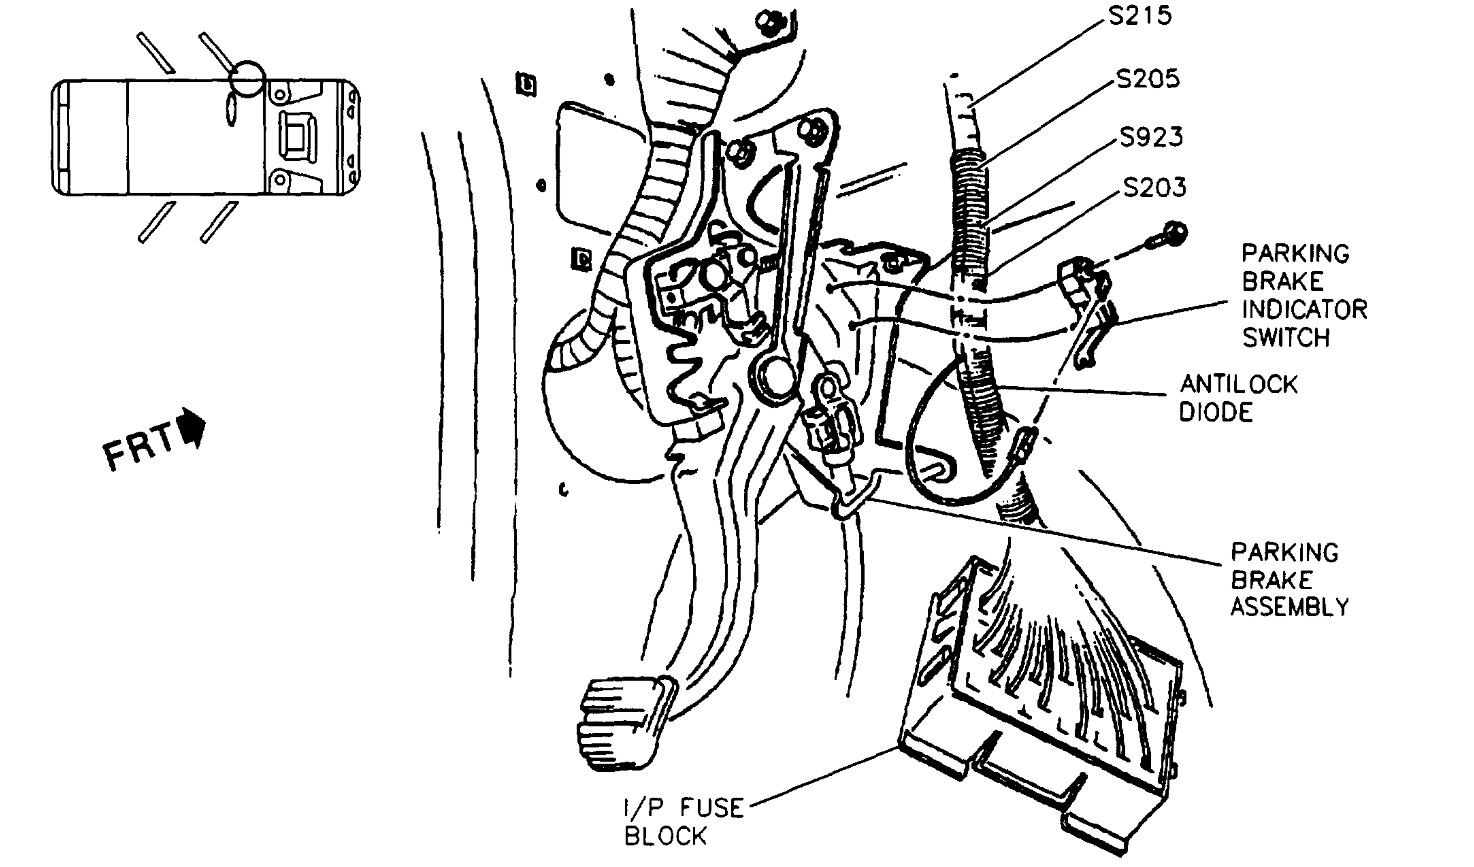 Fuse Box My Car Is Used And The Only Owners Manual With 1999 Pontiac Bonneville Diagram Thumb